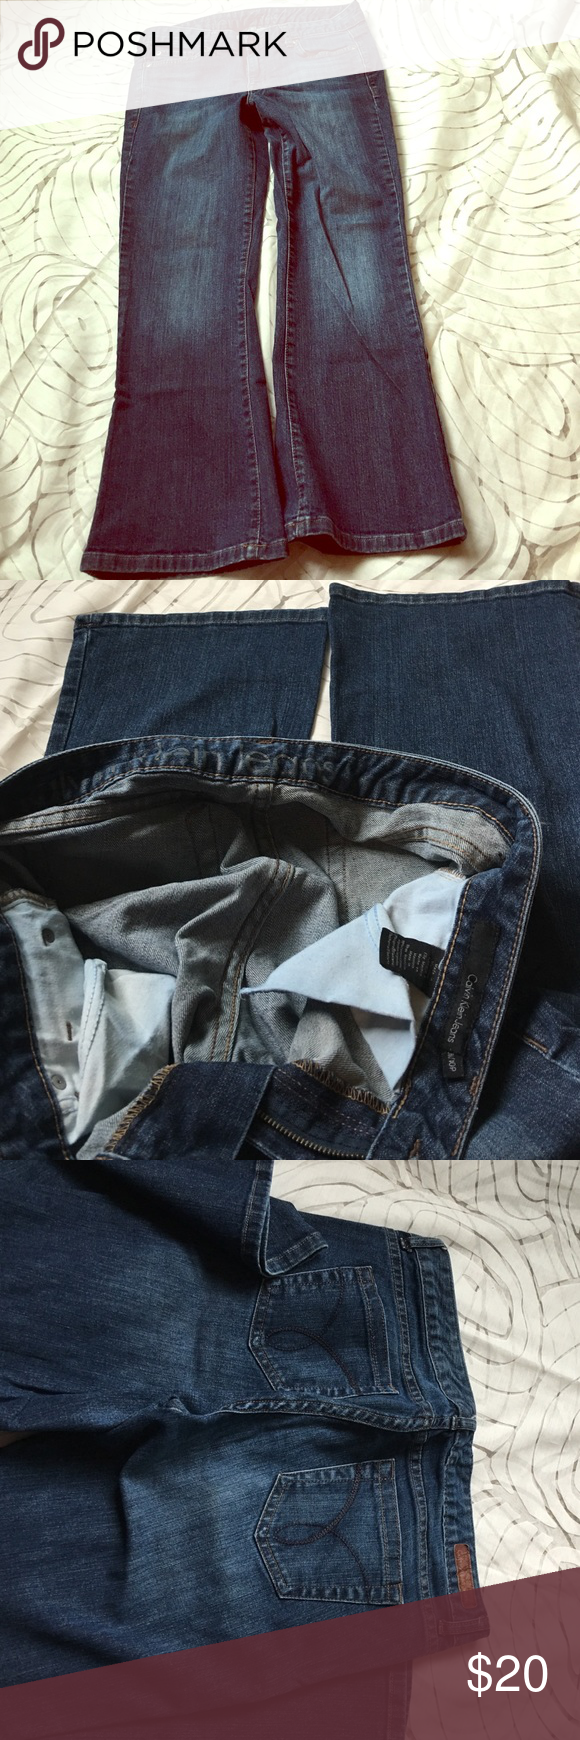 """Preloved Calvin Klein Jeans 10p Preloved Calvin Klein blue jeans.Flare.10p/30. Waist across:15 1/2"""". Crouch length:8"""". Inseam:25 1/2"""".  Ankle: 9"""" Calvin Klein Jeans Pants Boot Cut & Flare"""